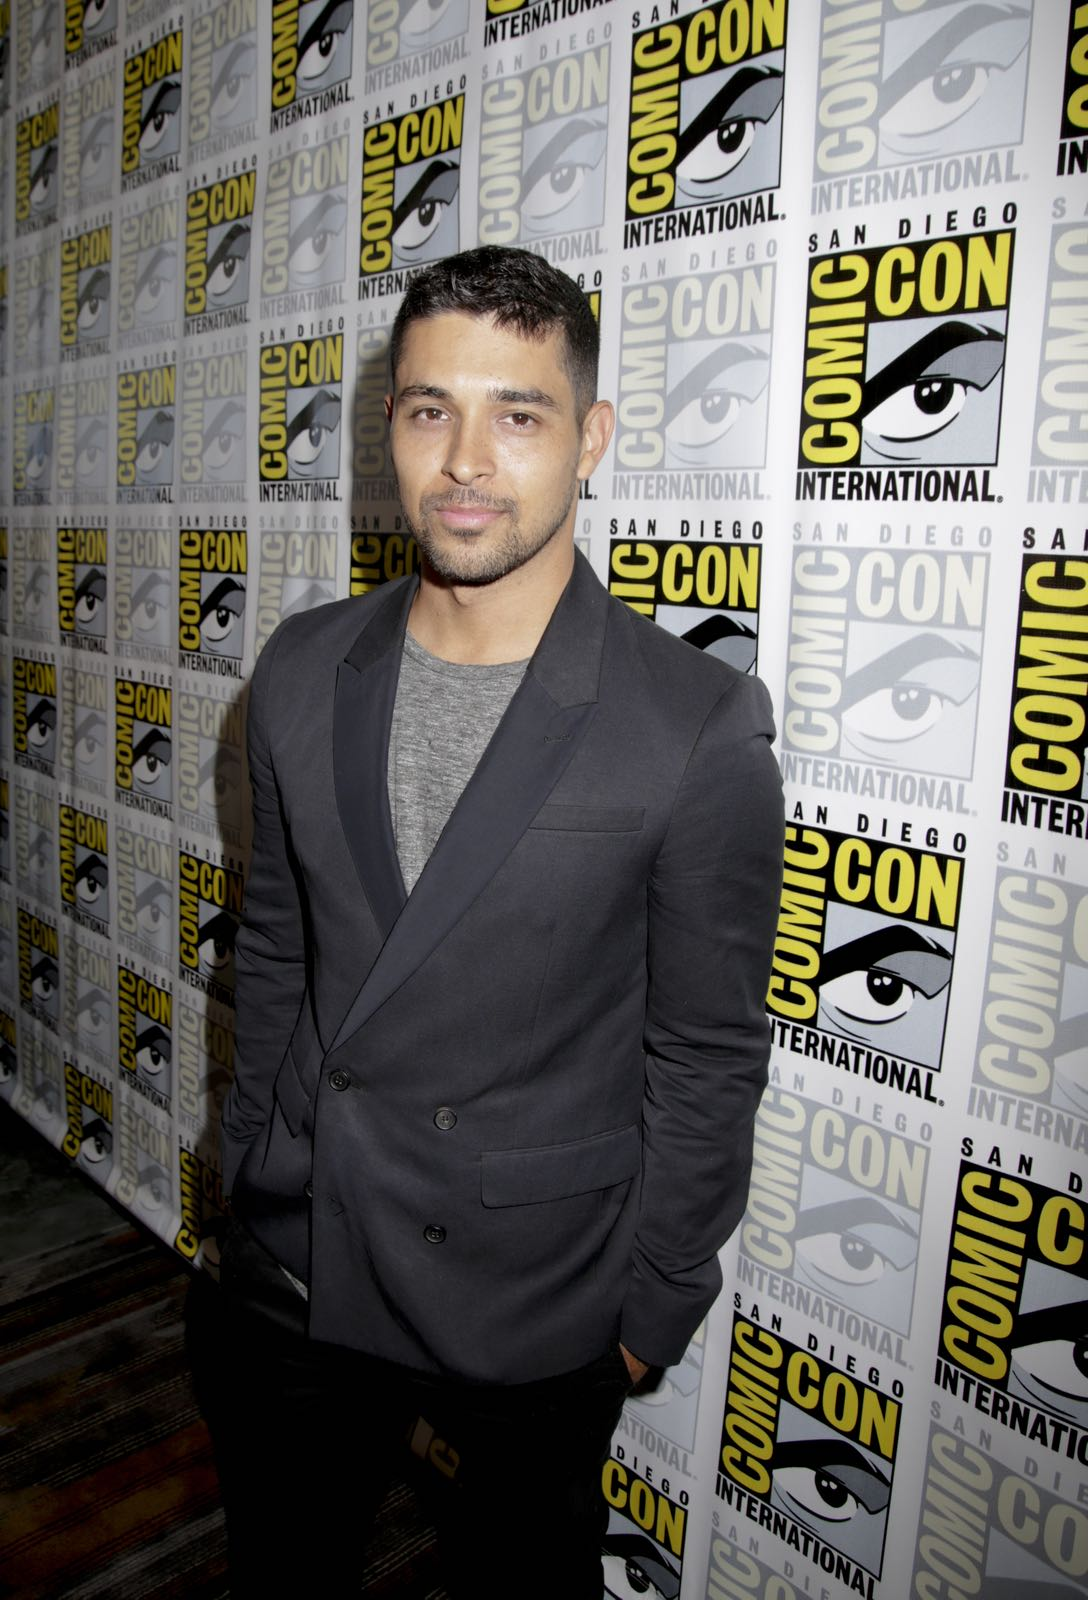 Wilmer Valderrama of NCIS at COMIC-CON® 2016 in San Diego, California. Photo: Johnny Vy/CBS ©2016 CBS Broadcasting, Inc. All Rights Reserved